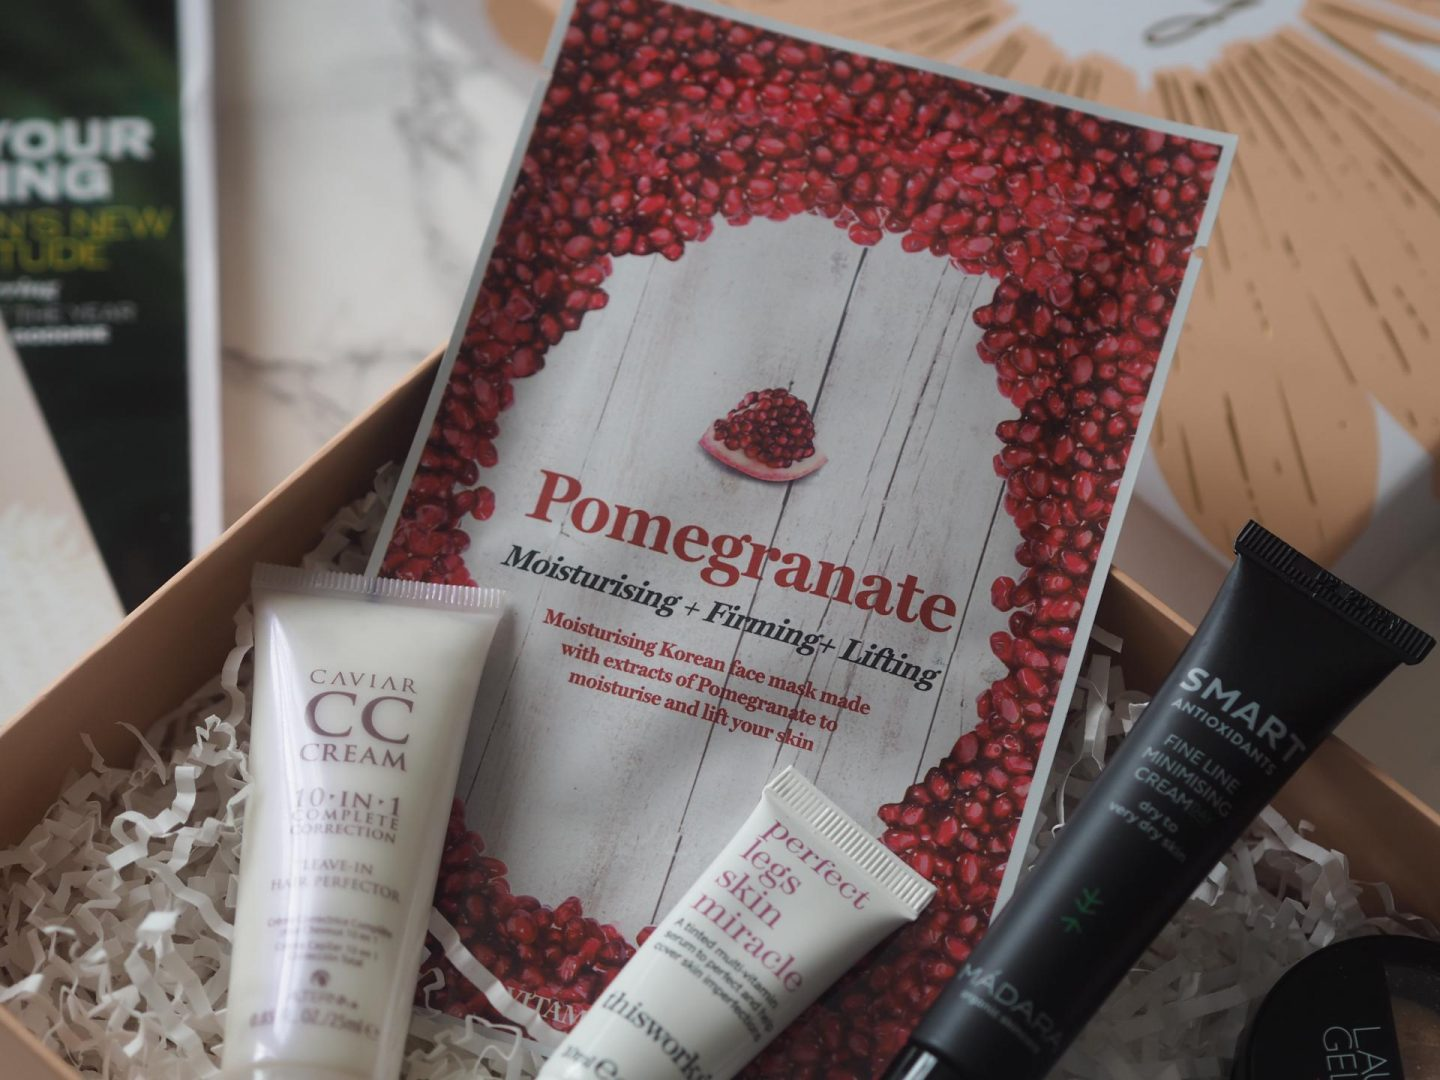 Pomegranate Sheet Mask from Vitamasques